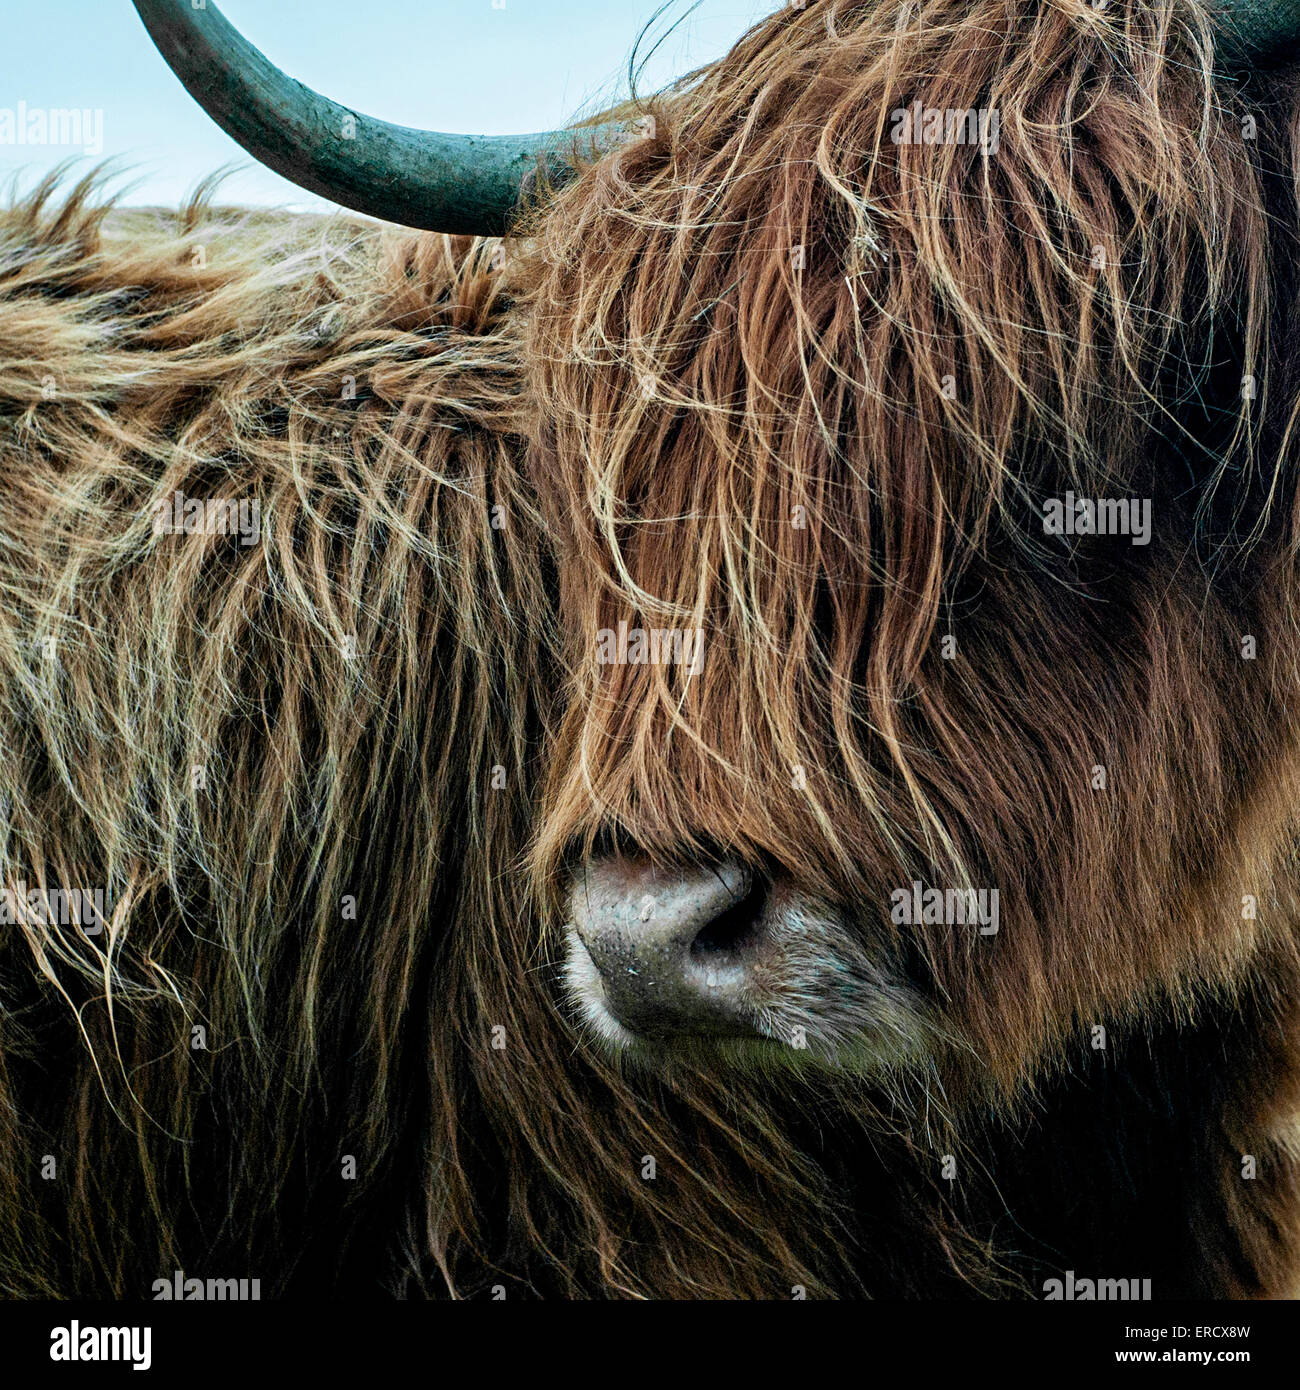 Highland Long Horn Cow light Brown shaggy coated cow with long curved horns on Bodmin Moor, Cornwall - Stock Image